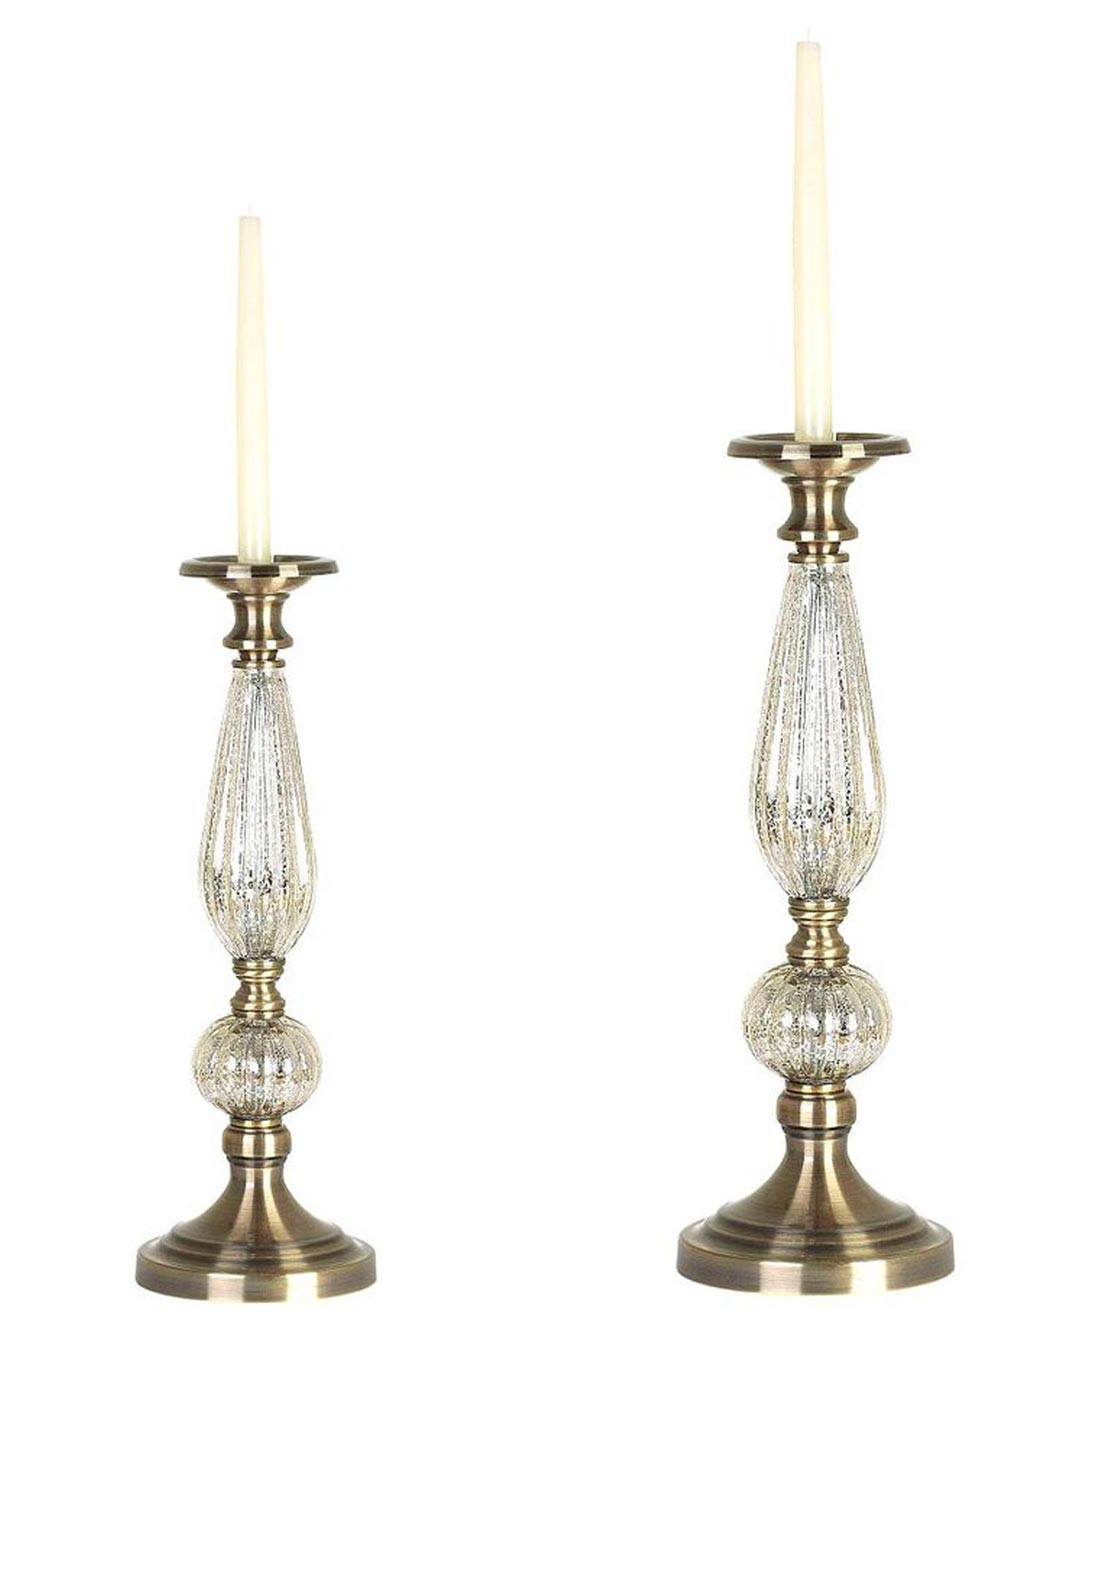 Mindy Brownes Sabrian Candle Holder Set of Two, 18 & 14 inches